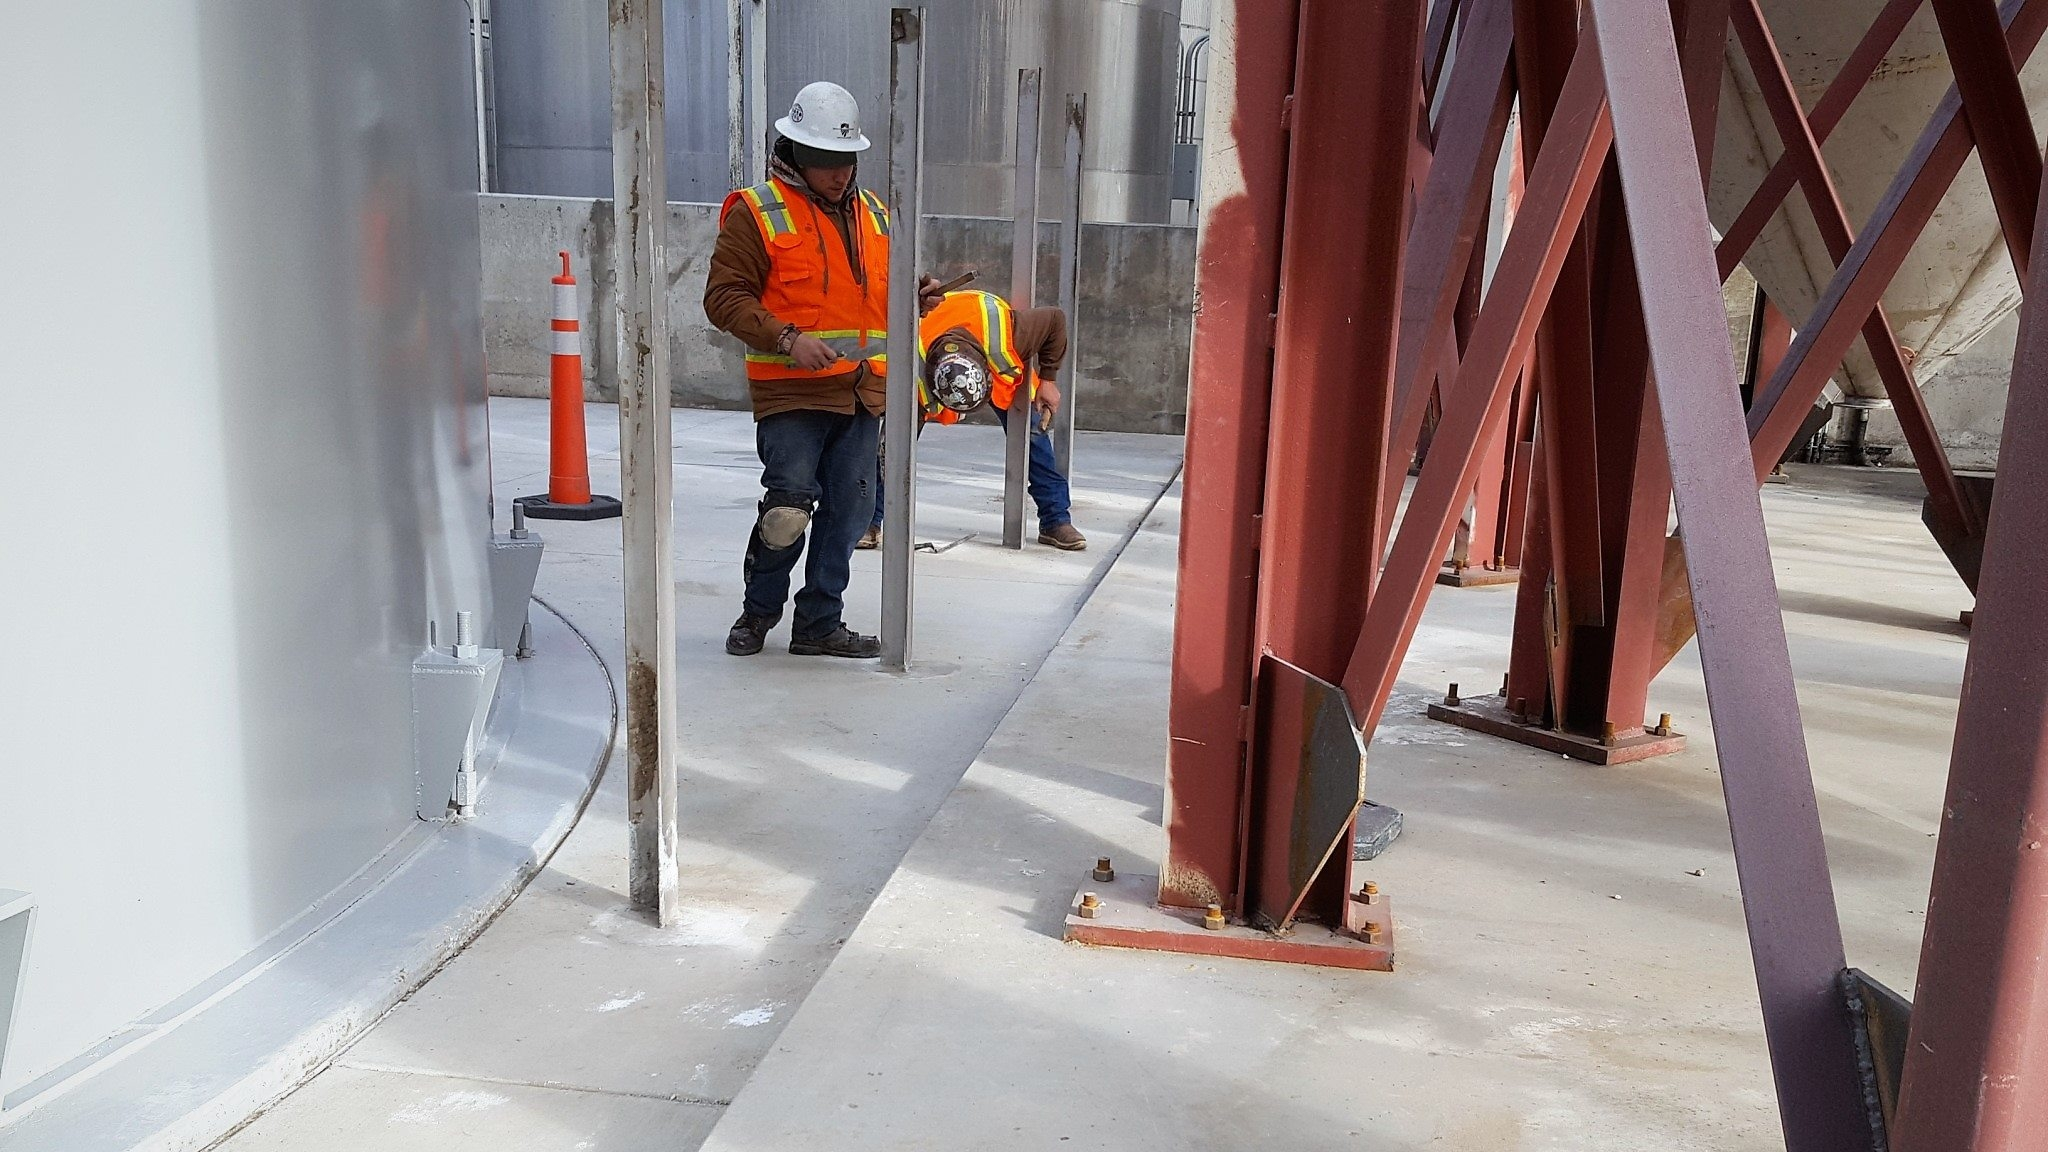 Construction Management - As your trusted construction advisor, we handle all aspects of your project, from conceptualizing early design ideas, creating an accurate budget, providing buildable construction drawings, to managing the team of quality subcontractors building your project - we can do it all.